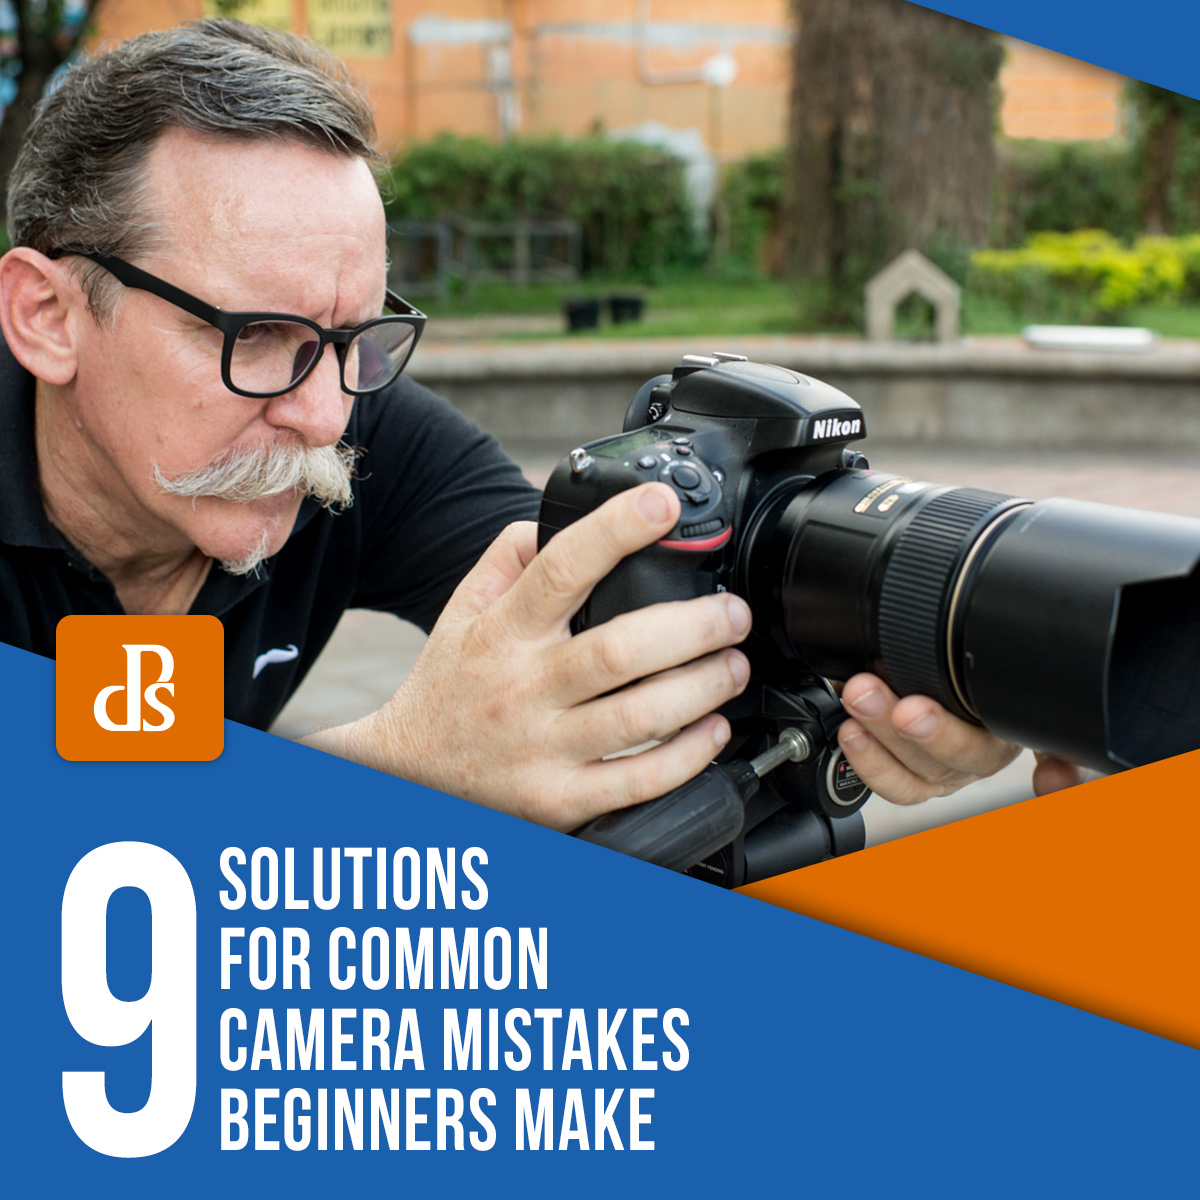 dps-common-camera-mistakes featured image